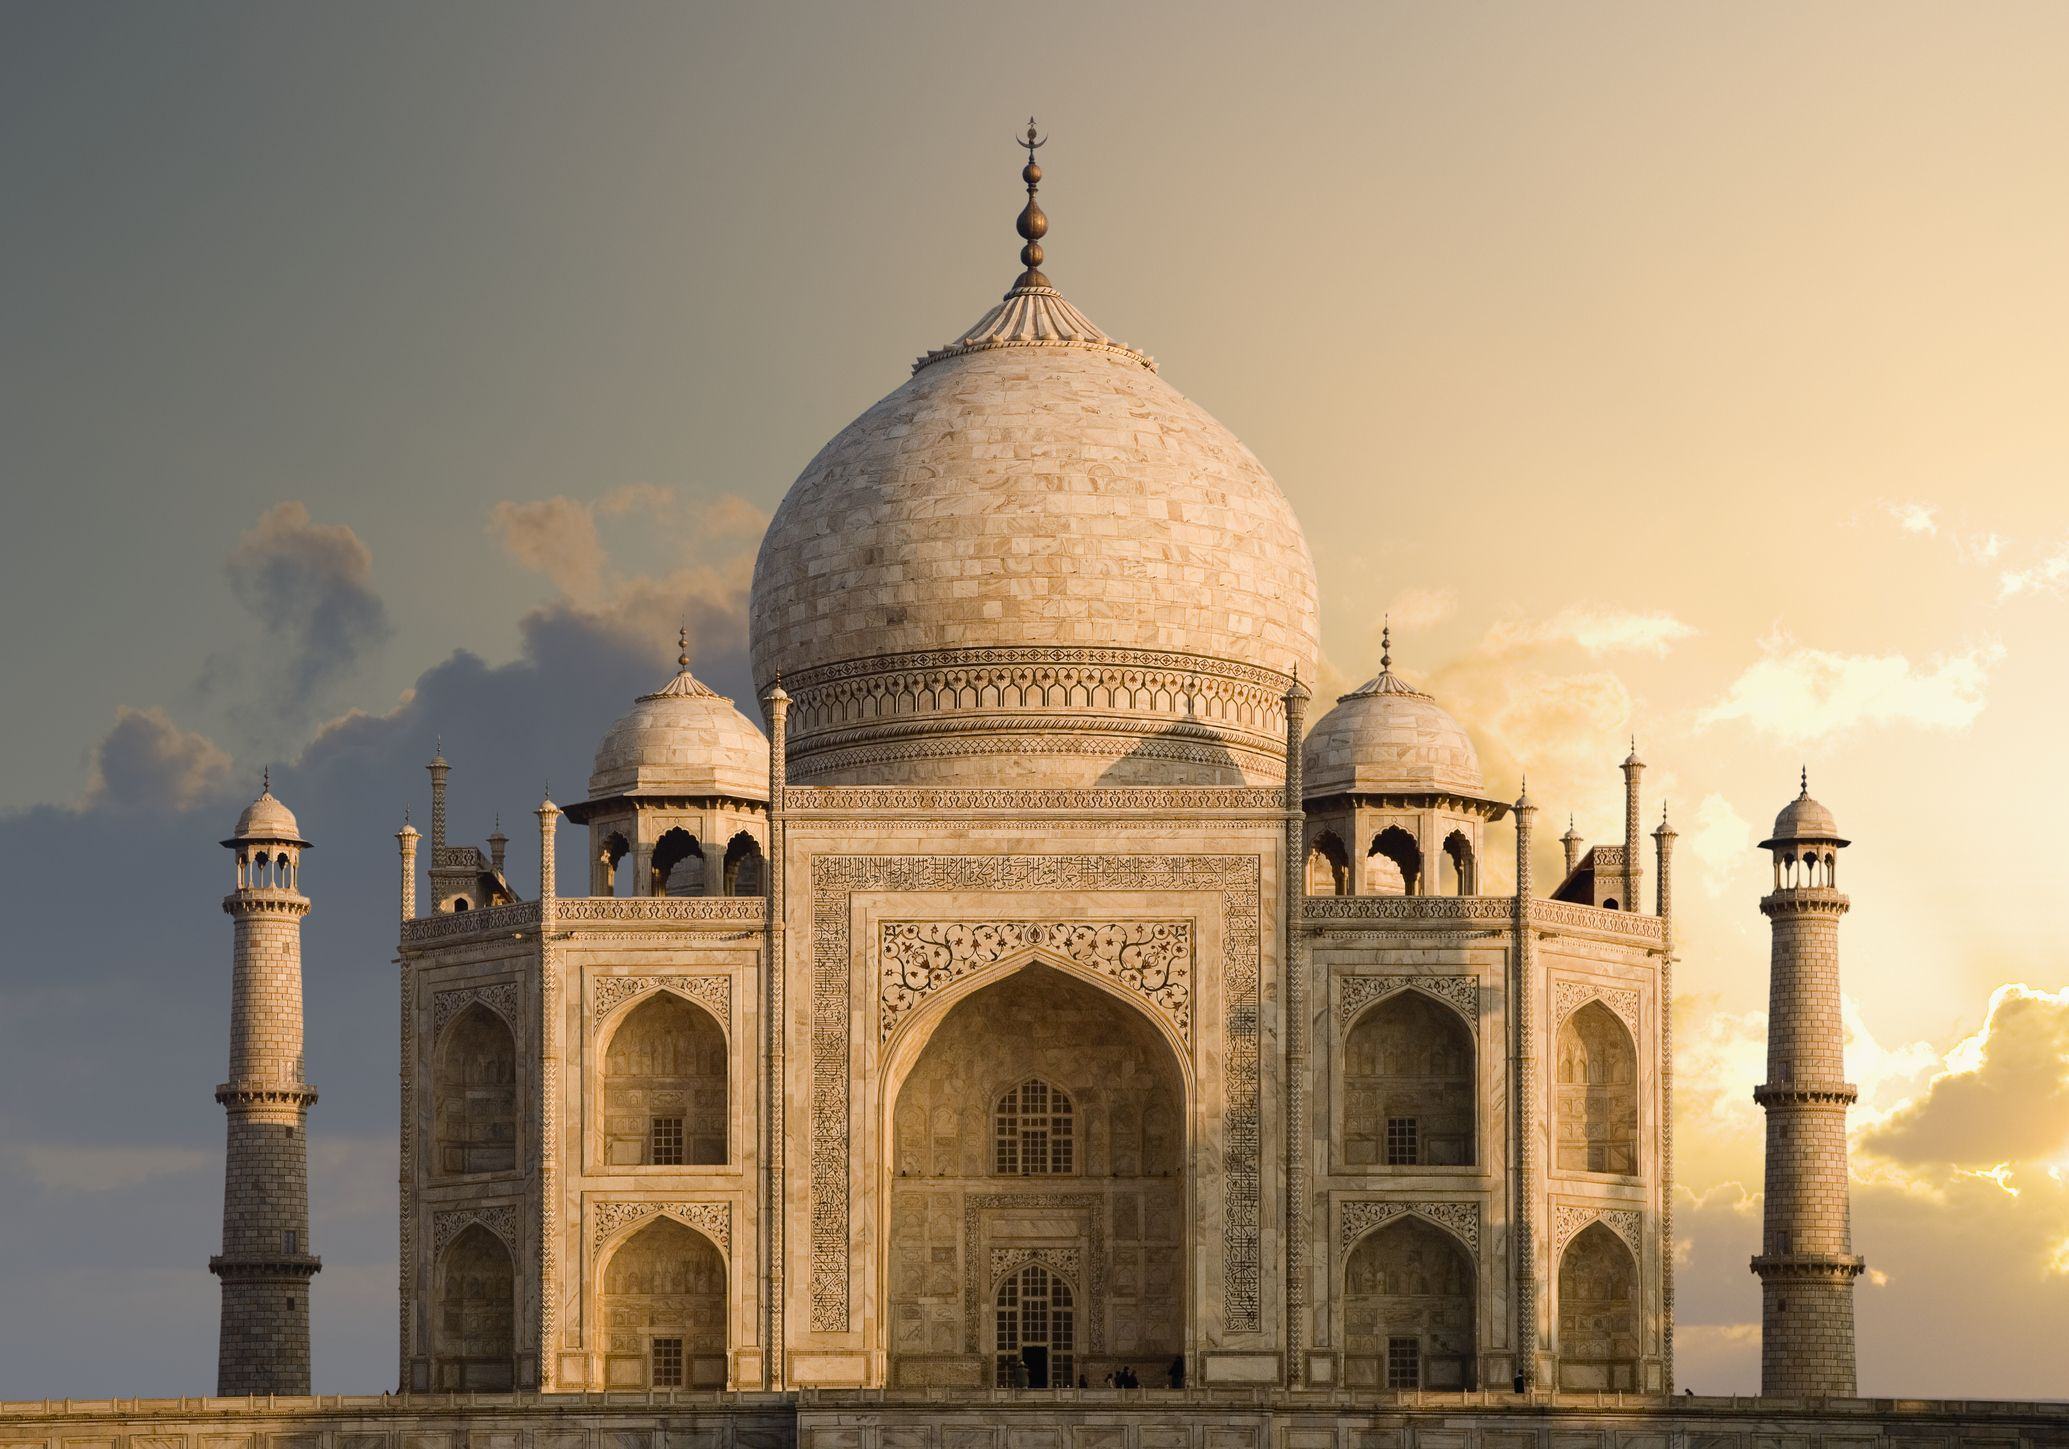 Agra Overnight Tour: from Delhi